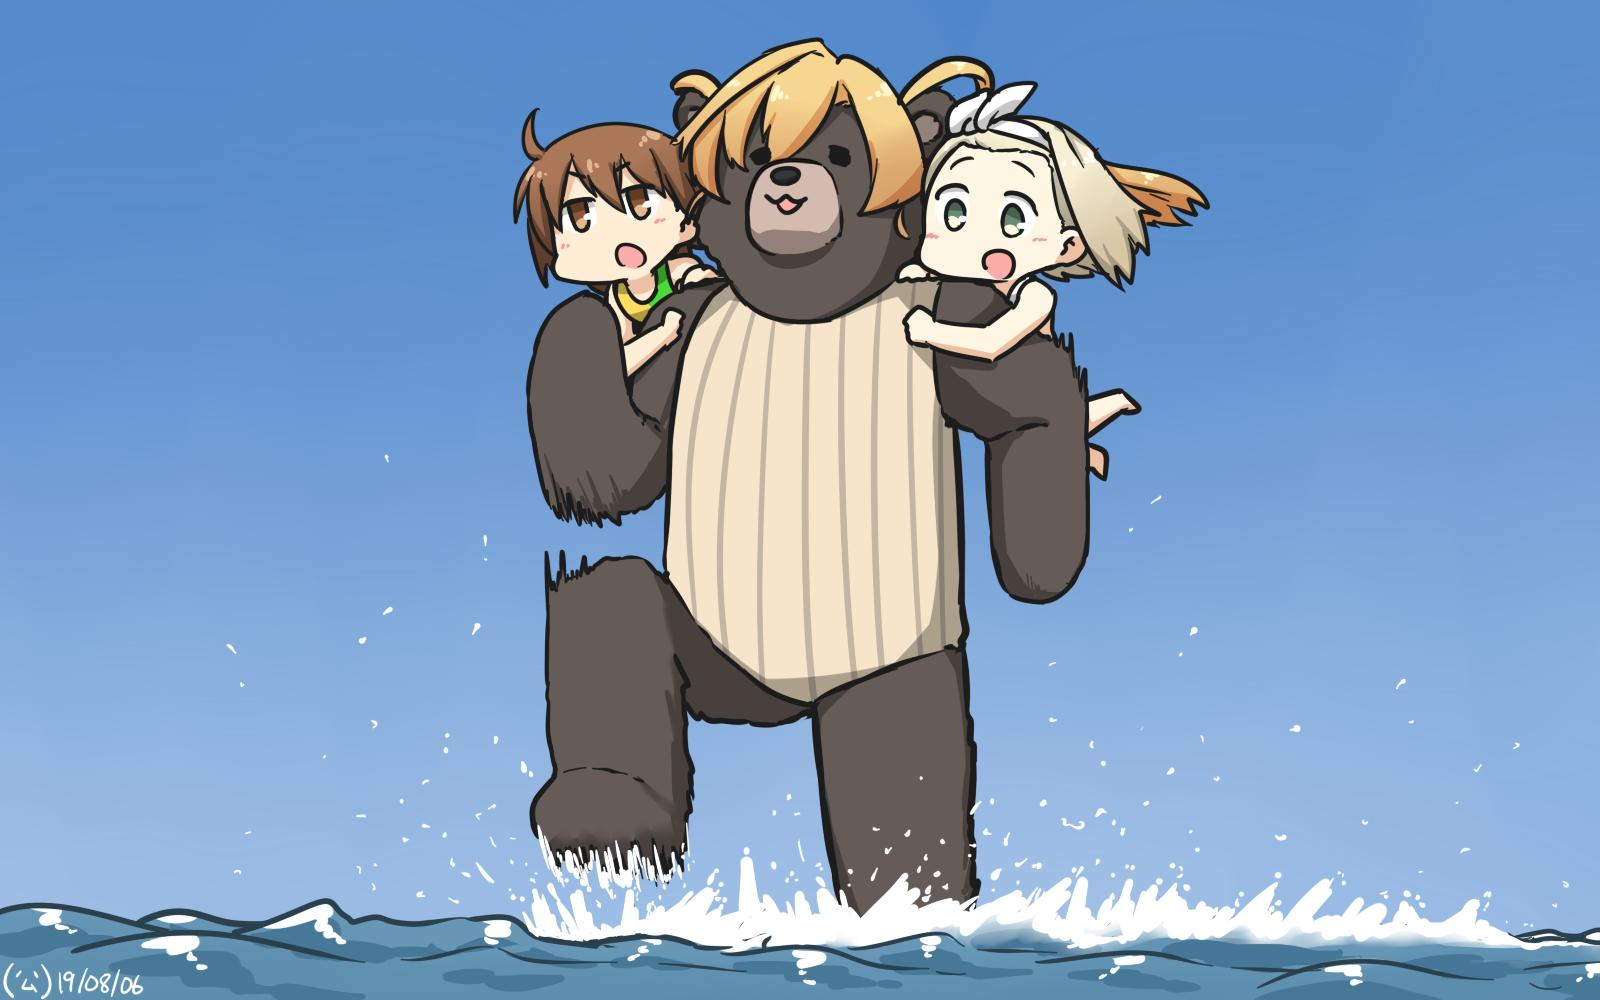 3girls abukuma_(kantai_collection) animalization bear blonde_hair brown_eyes brown_hair brown_swimsuit carrying casual_one-piece_swimsuit commentary_request dated double_bun green_eyes hair_rings hairband hamu_koutarou highres i-504_(kantai_collection) kantai_collection long_hair luigi_torelli_(kantai_collection) multiple_girls one-piece_swimsuit running_on_liquid school_swimsuit short_hair striped striped_swimsuit swimsuit two-tone_swimsuit wakaba_(kantai_collection) water white_hairband white_school_swimsuit white_swimsuit